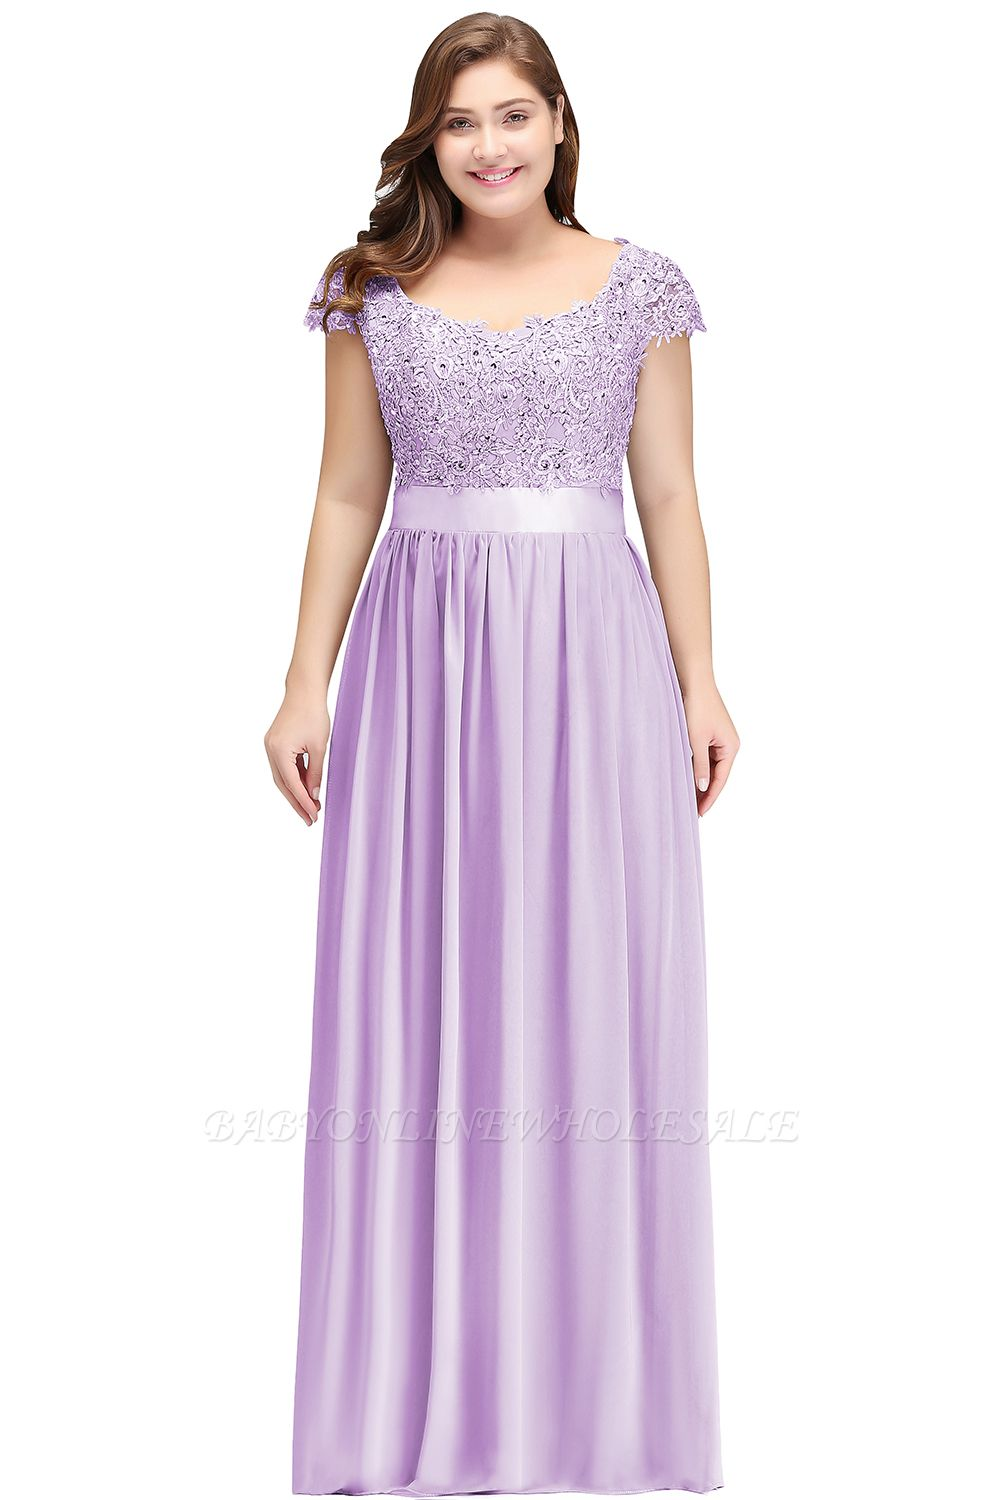 HOLLAND | A-Line Scoop Floor Length Cap Sleeves Appliques Silver plus size BridesmaidDresses with Sash